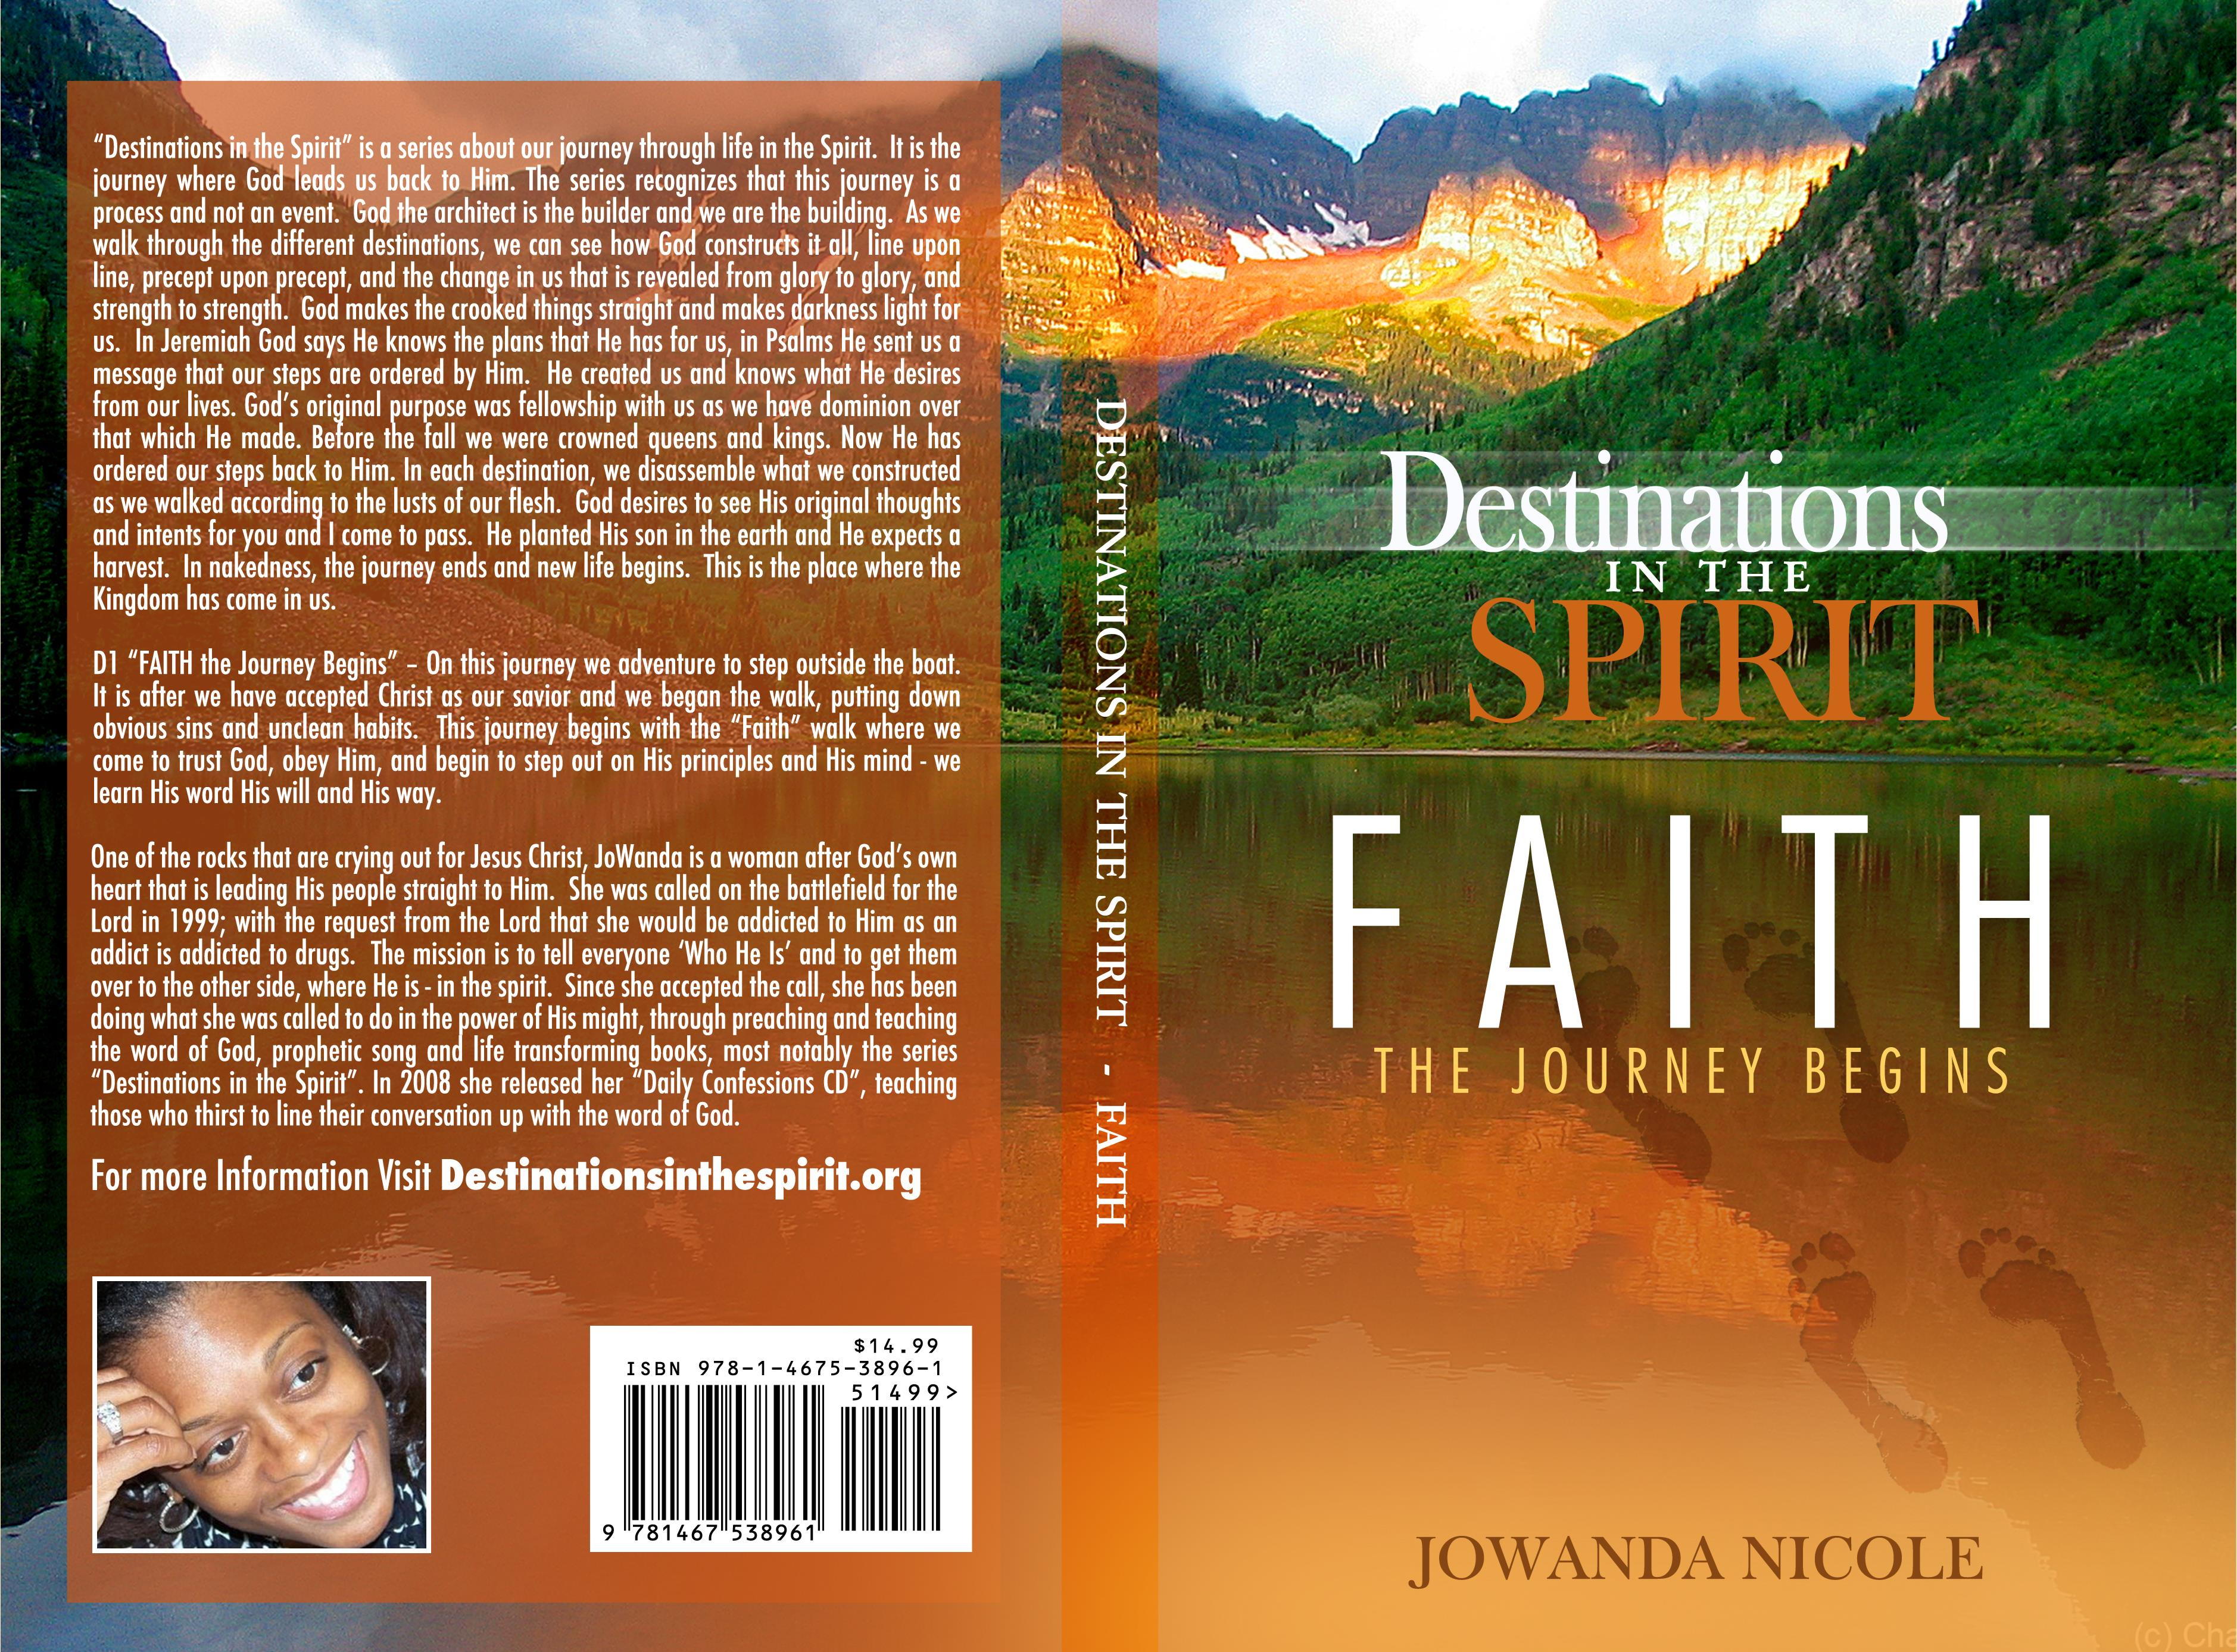 FAITH: The Journey Begins cover image